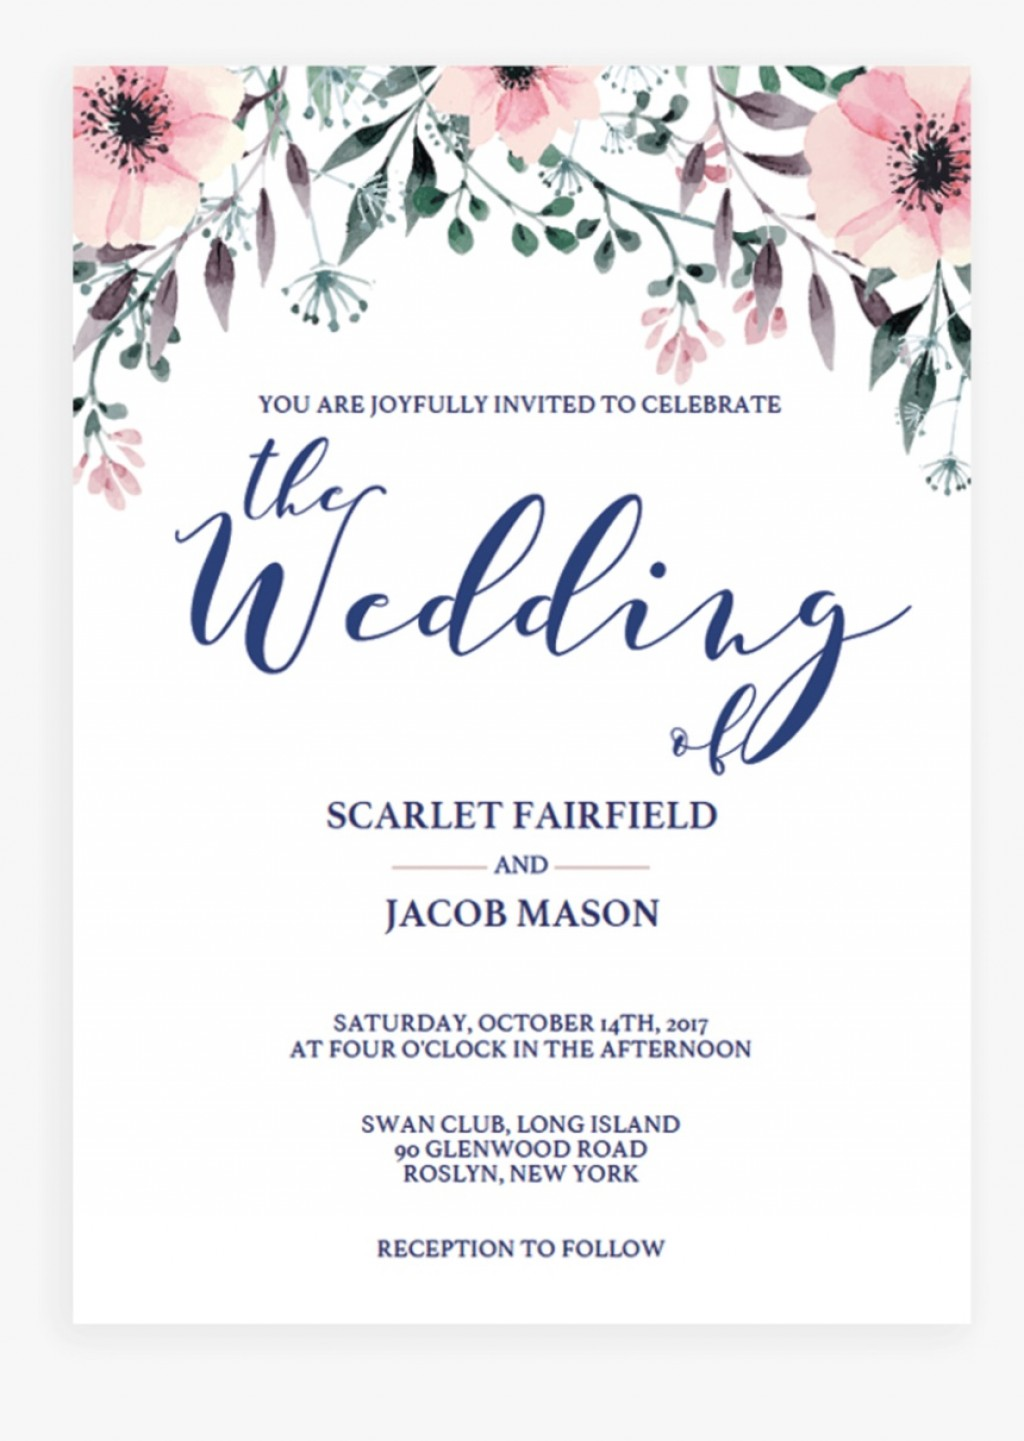 004 Awful Wedding Invitation Template Free Sample  Card Psd For Word Muslim 2007Large